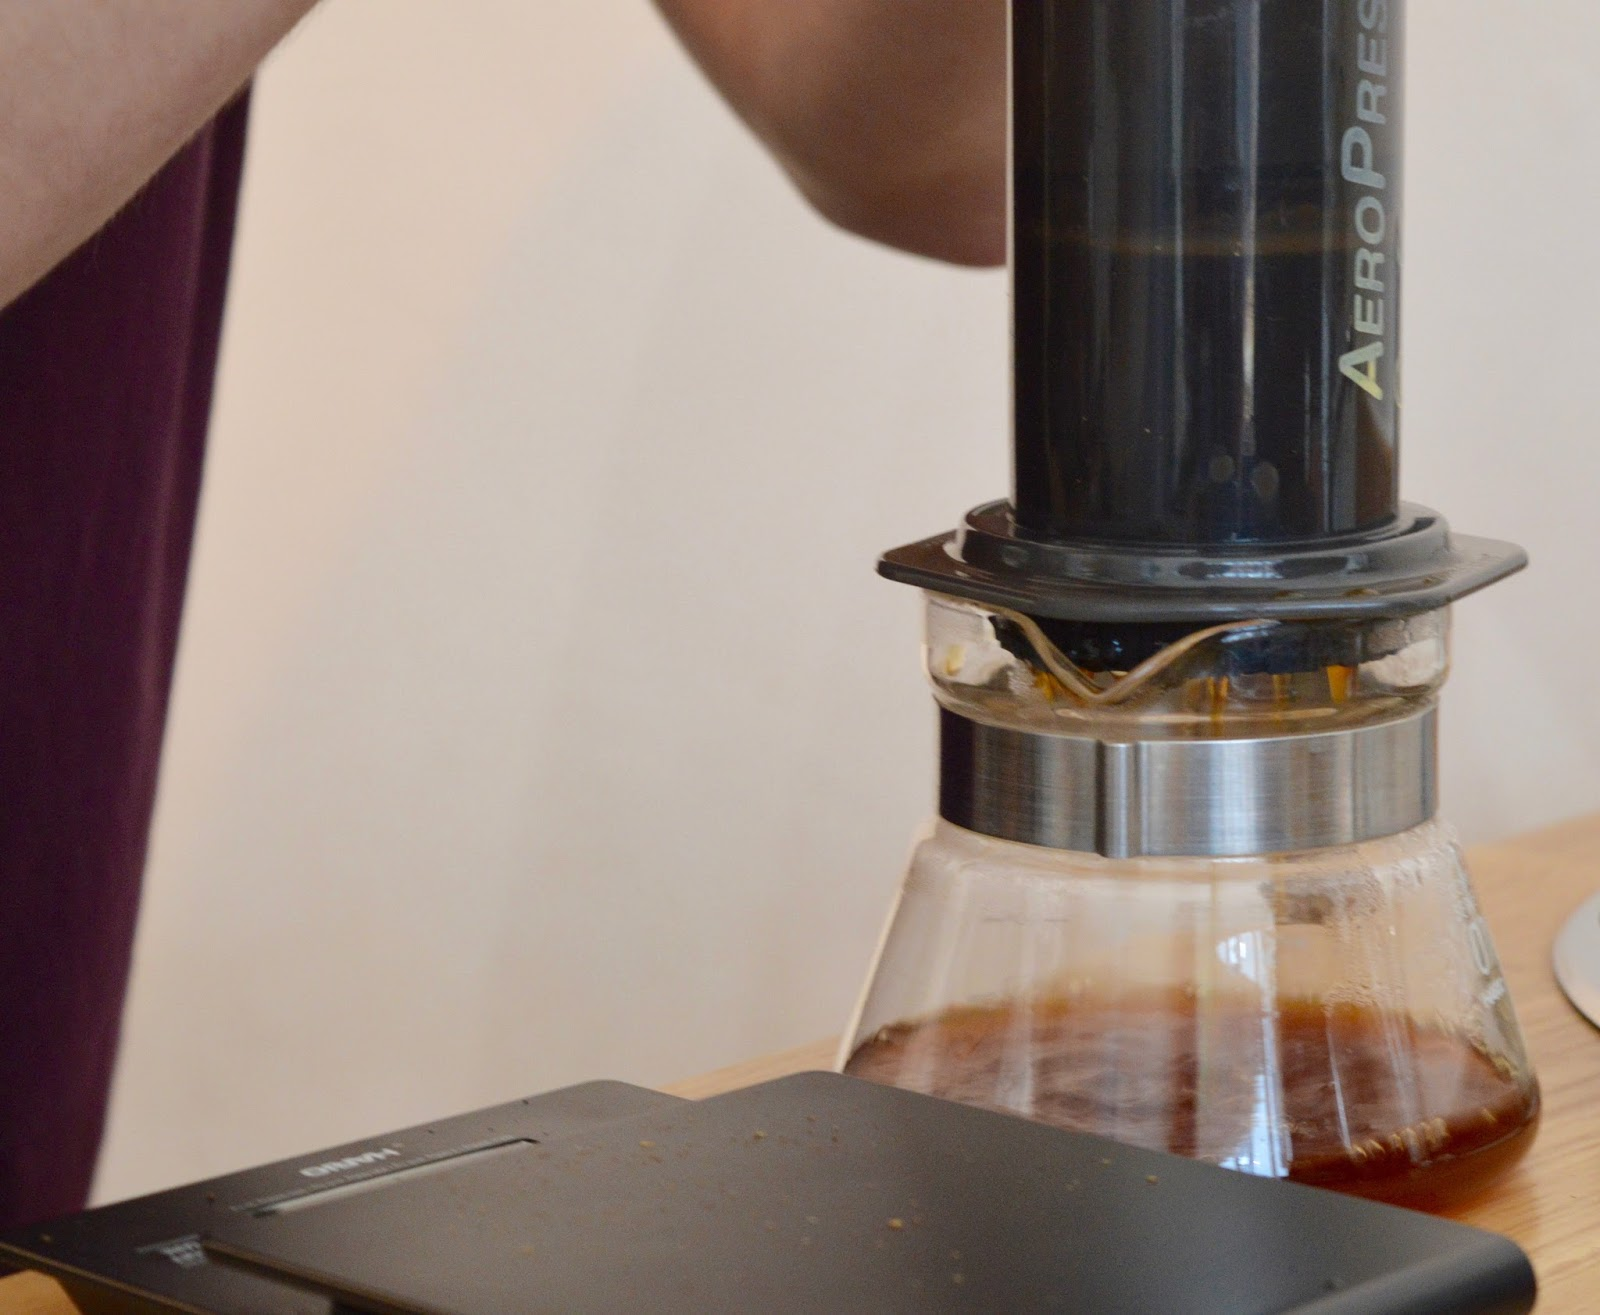 Aeropress Coffee Maker Demo : Laneway & Co - An Independent Coffee Shop in Newcastle serving FREE Babyccinos North East ...